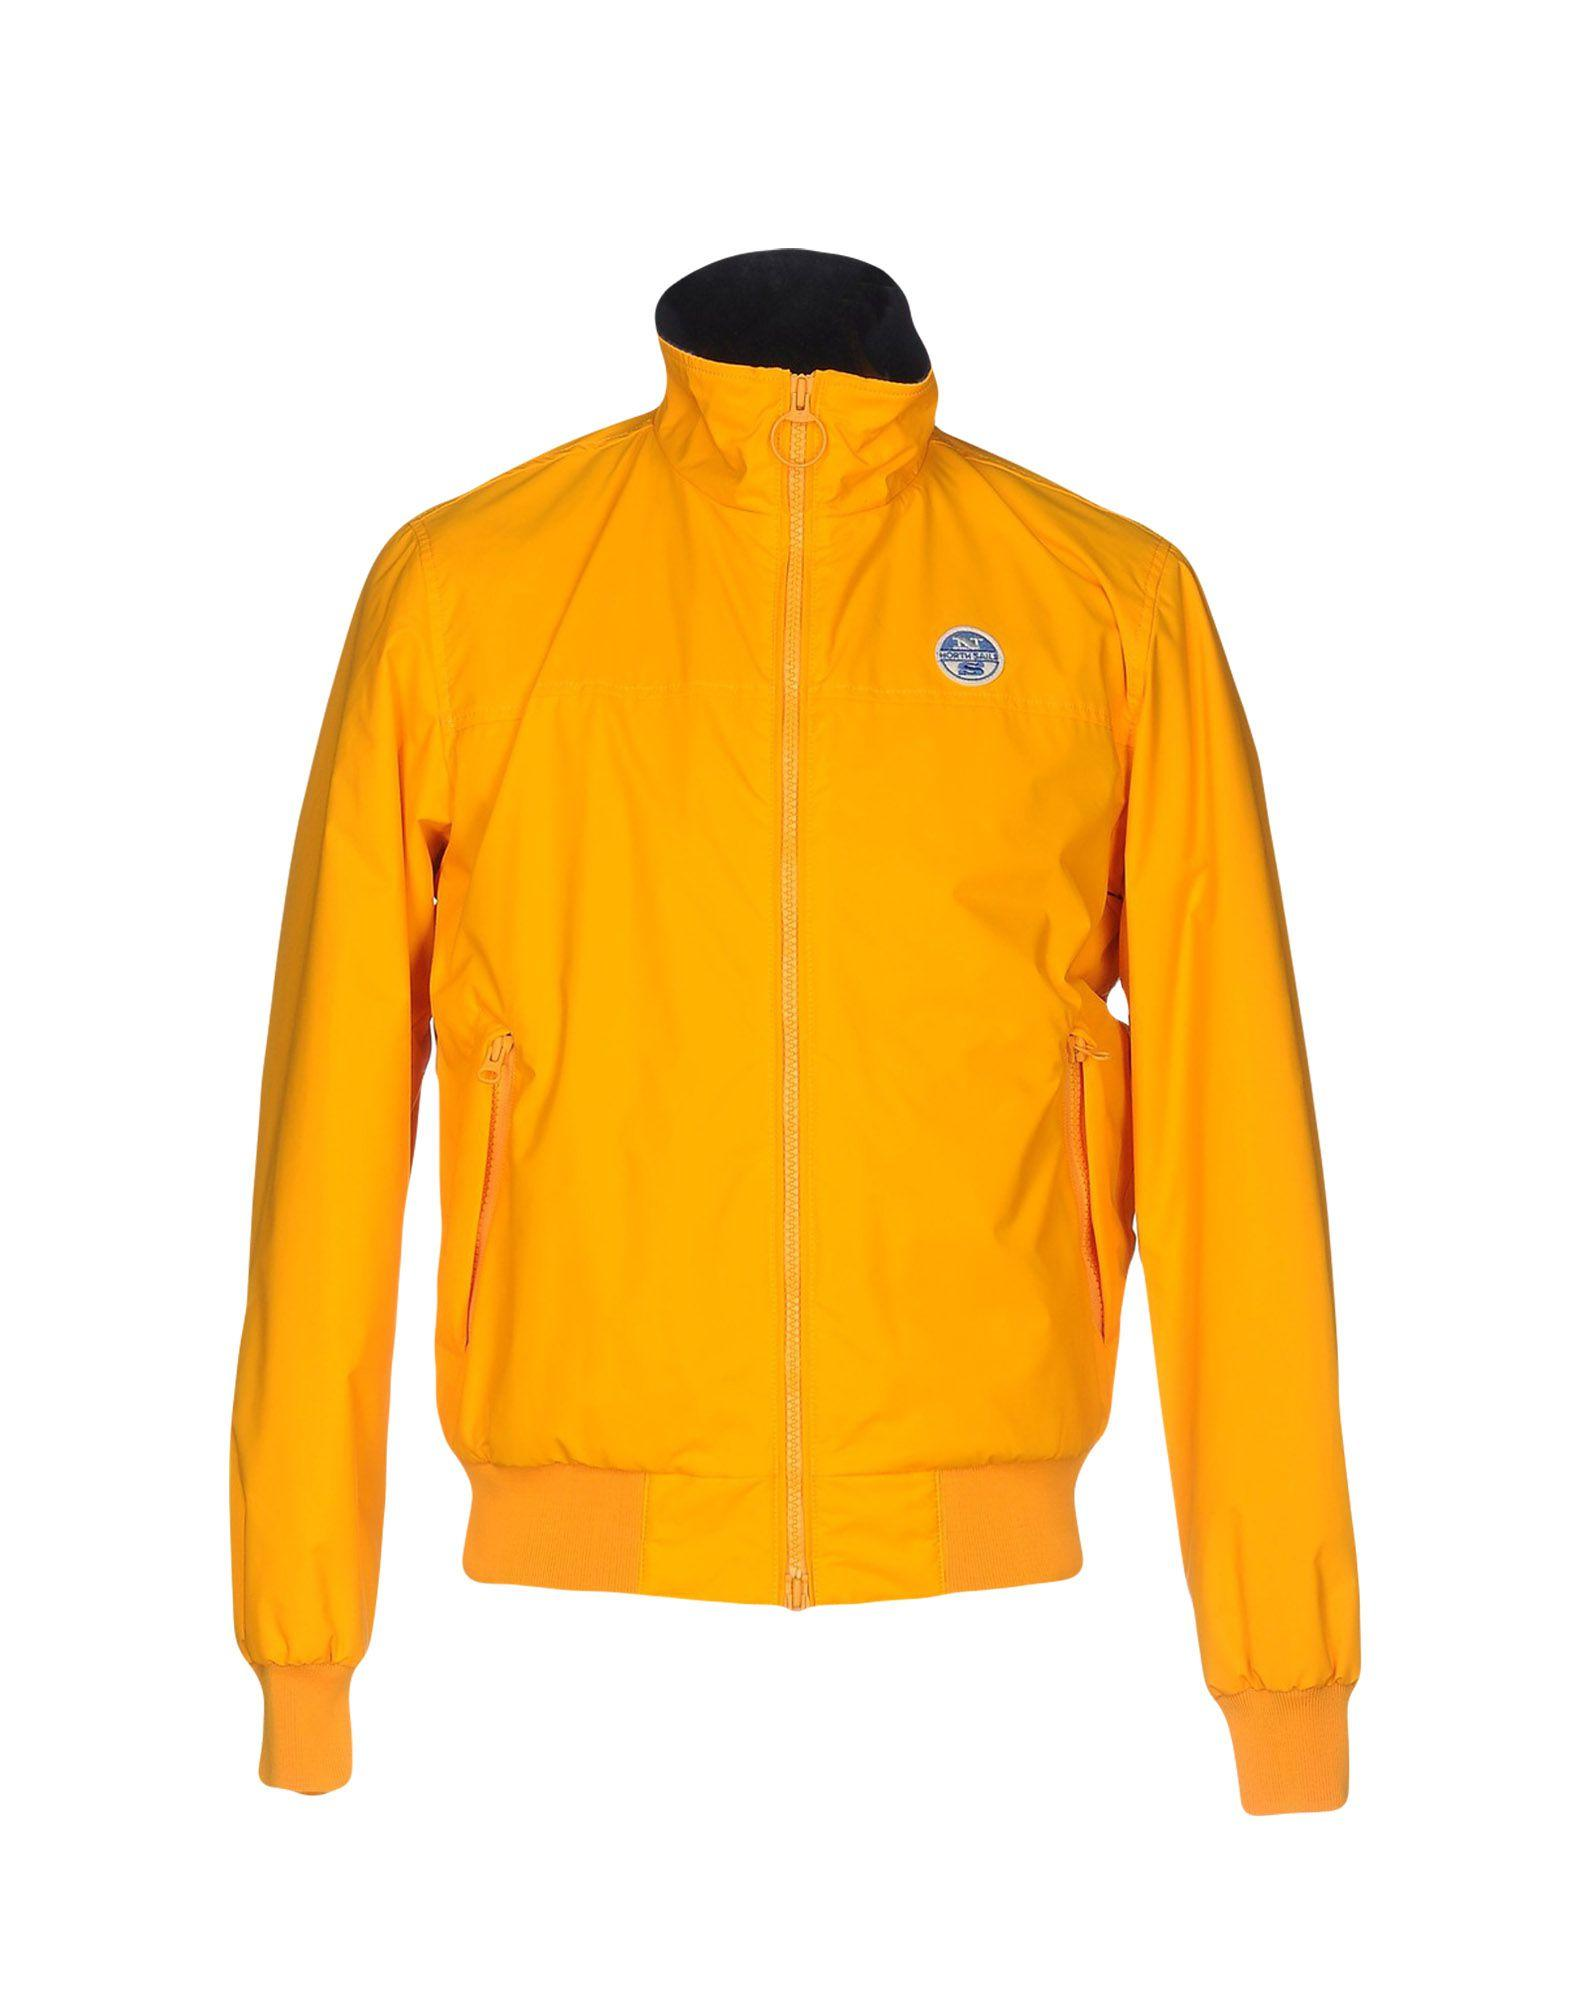 lyst north sails jacket in yellow for men. Black Bedroom Furniture Sets. Home Design Ideas